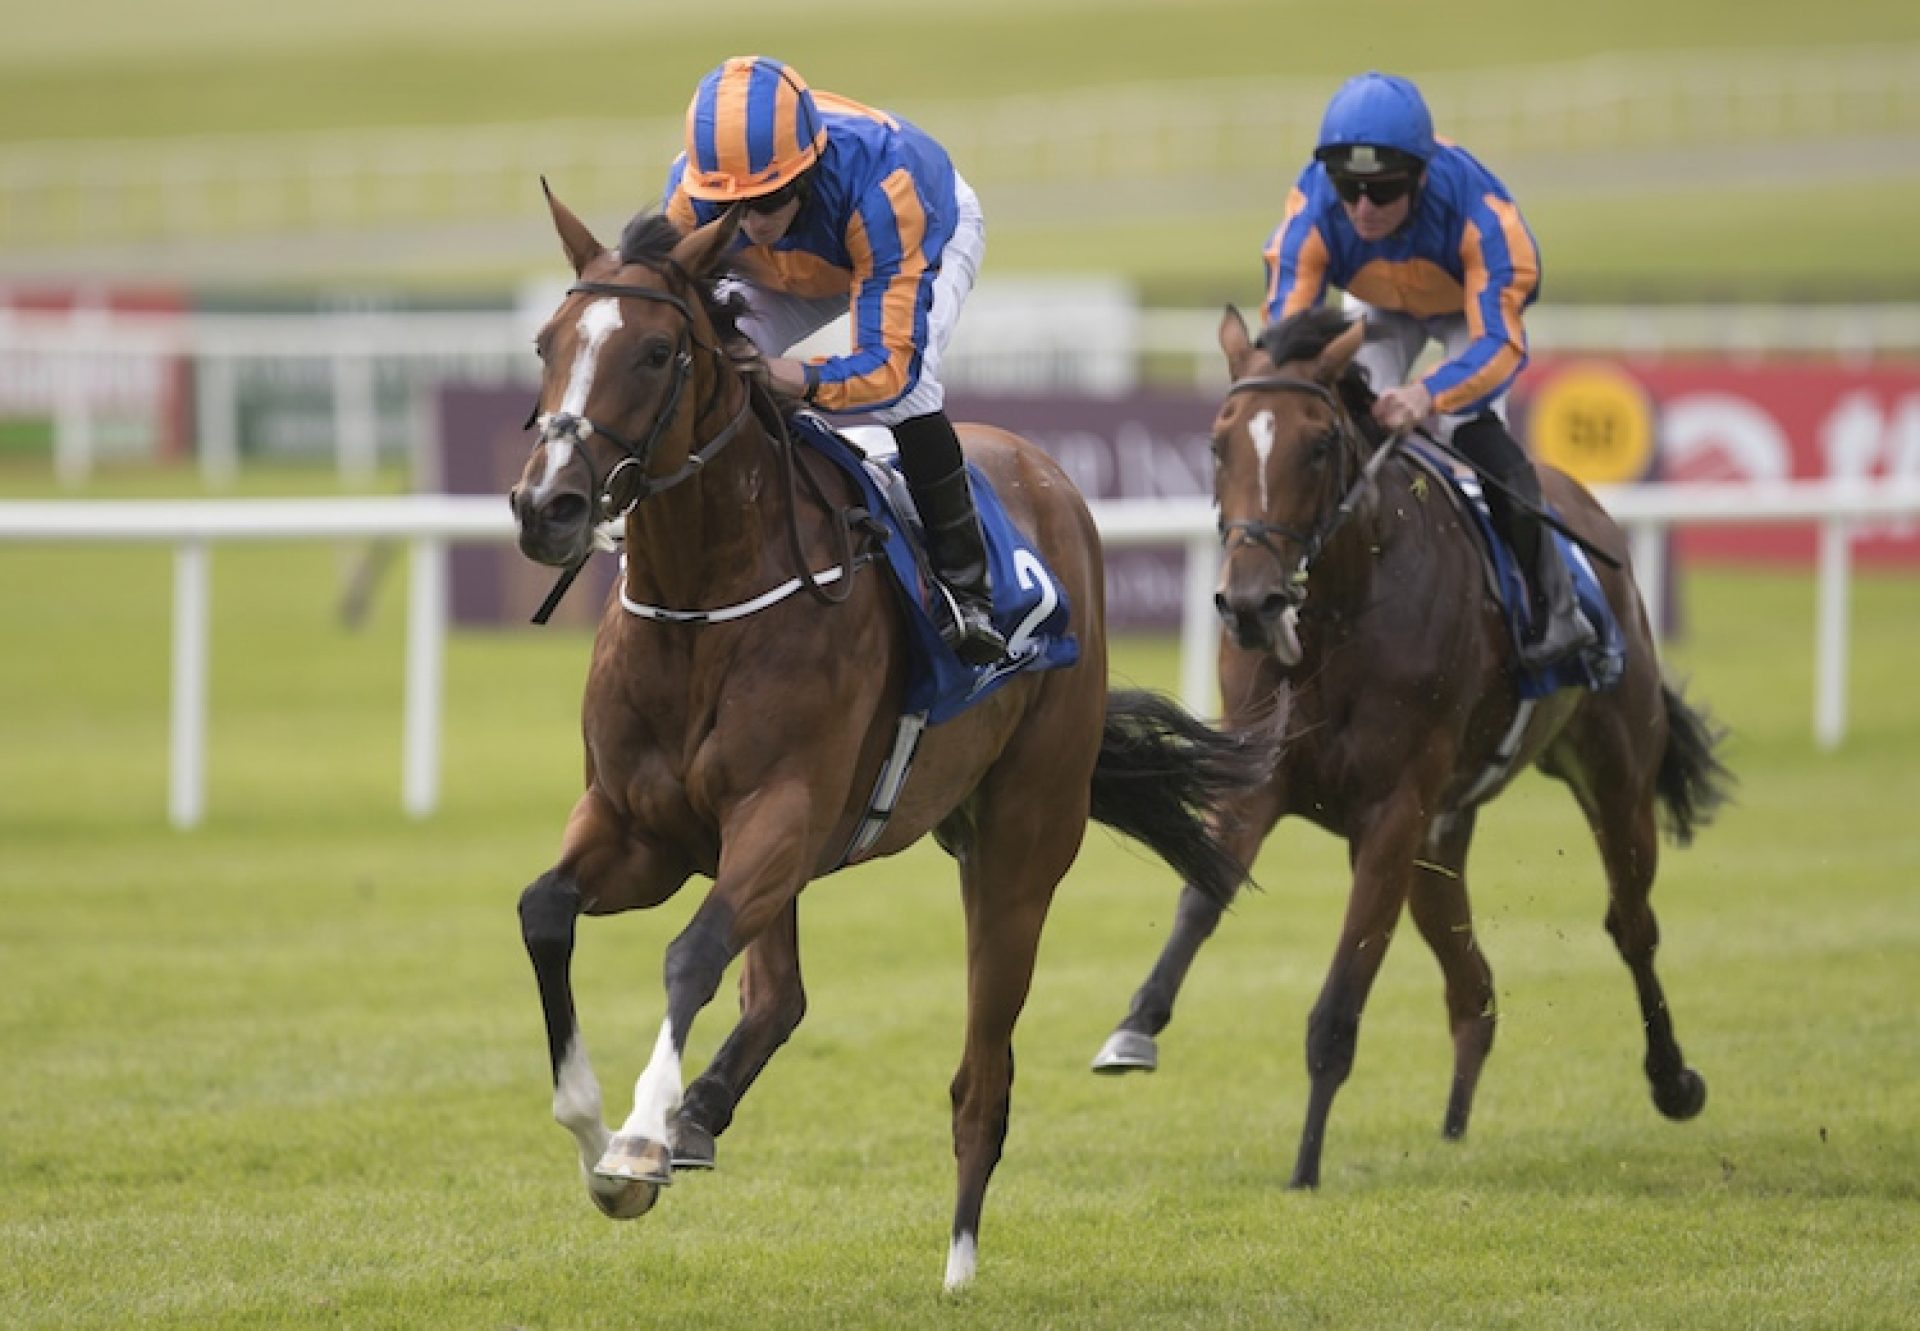 Clemmie (Galileo) winning the G3 Grangecon Stud Stakes at the Curragh